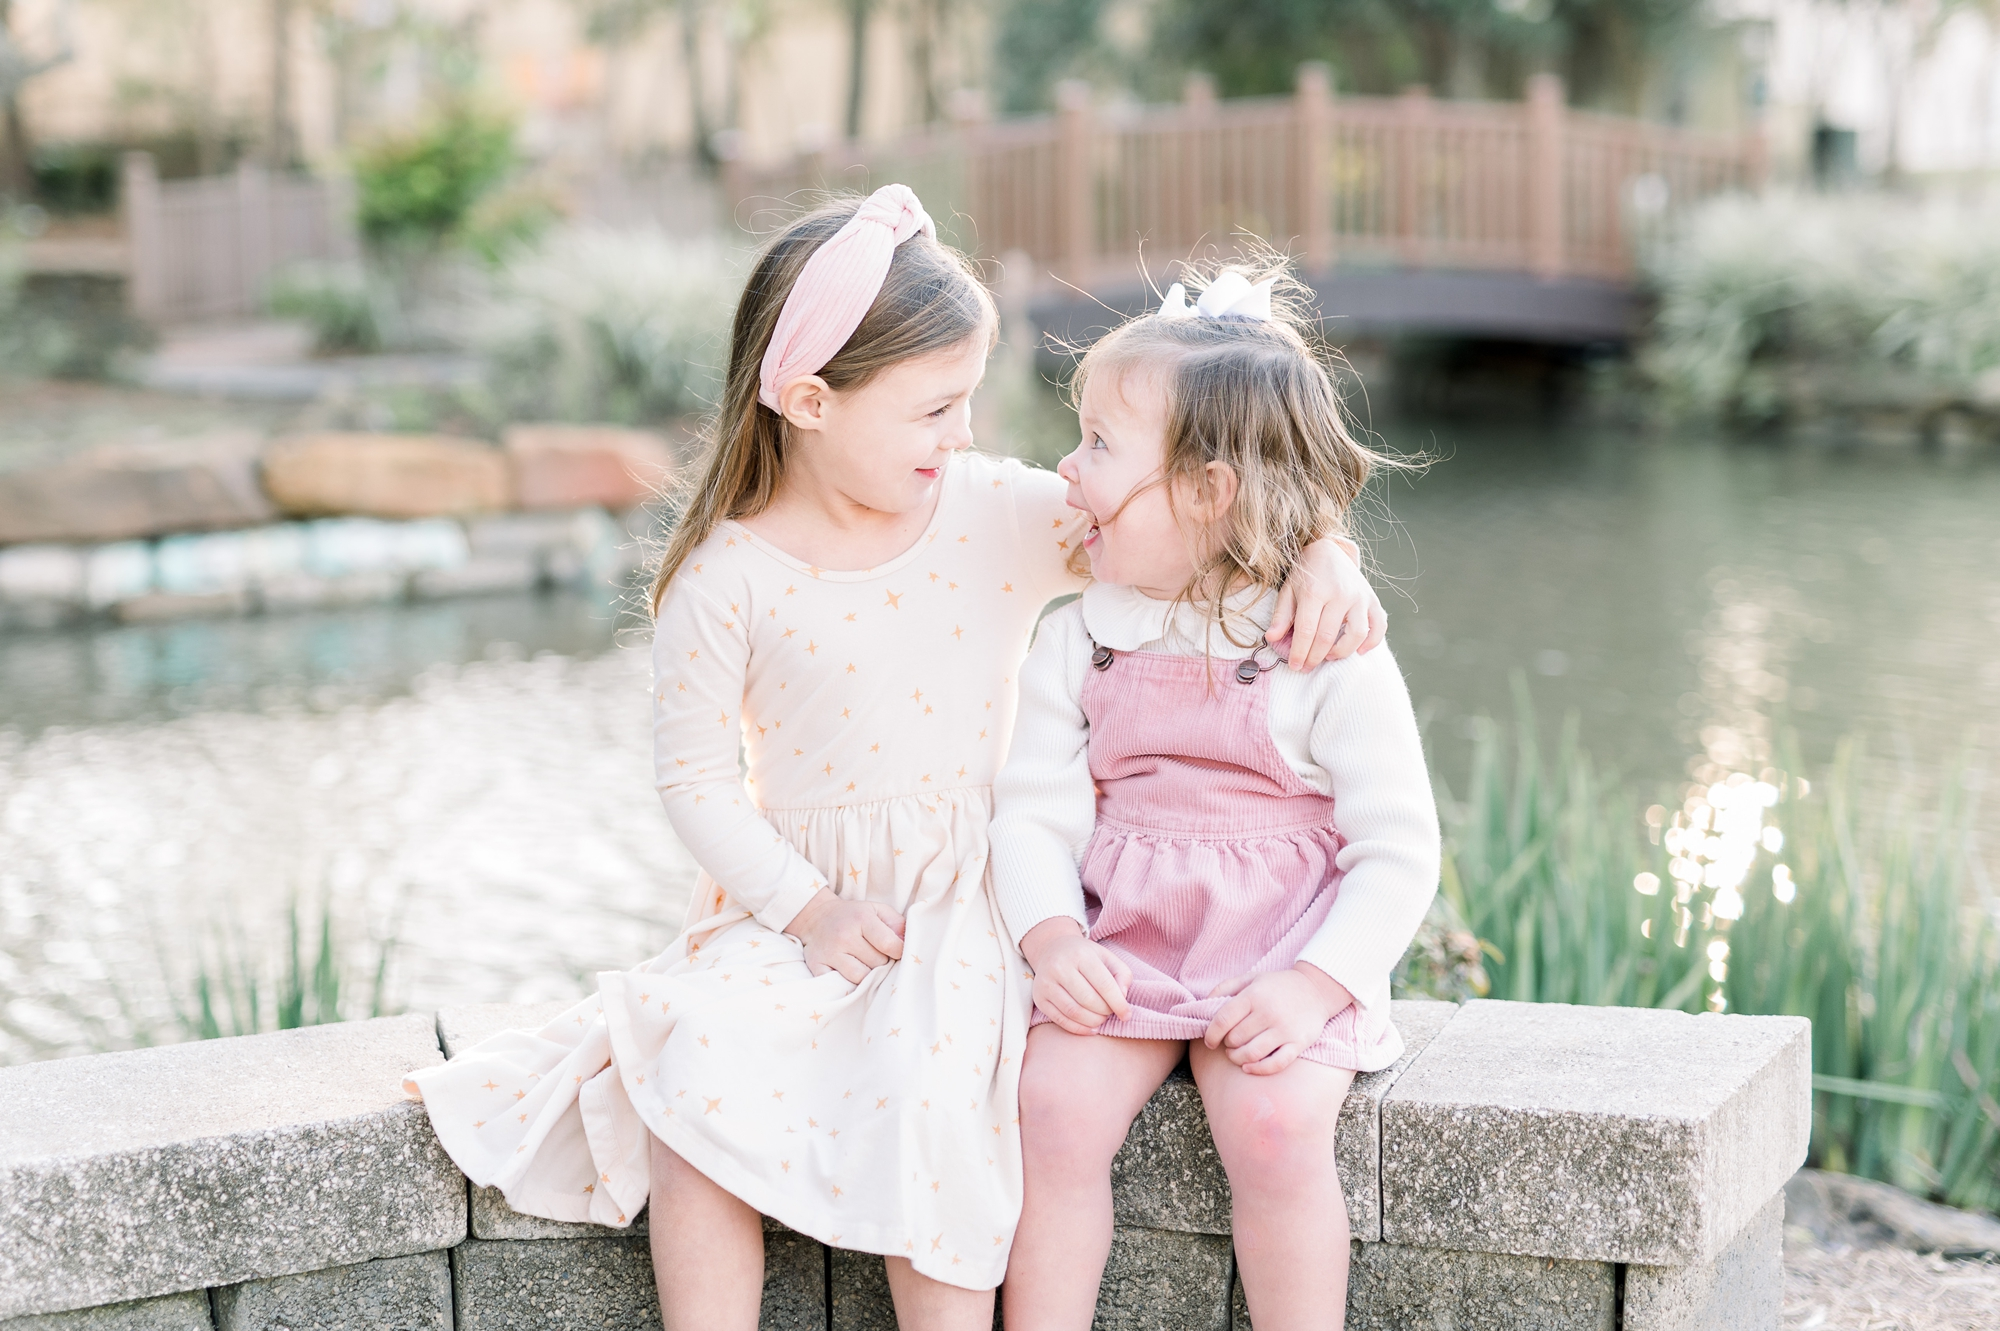 Sisters looking at each other with arms around each other. Photo by Aimee Hamilton Photography.